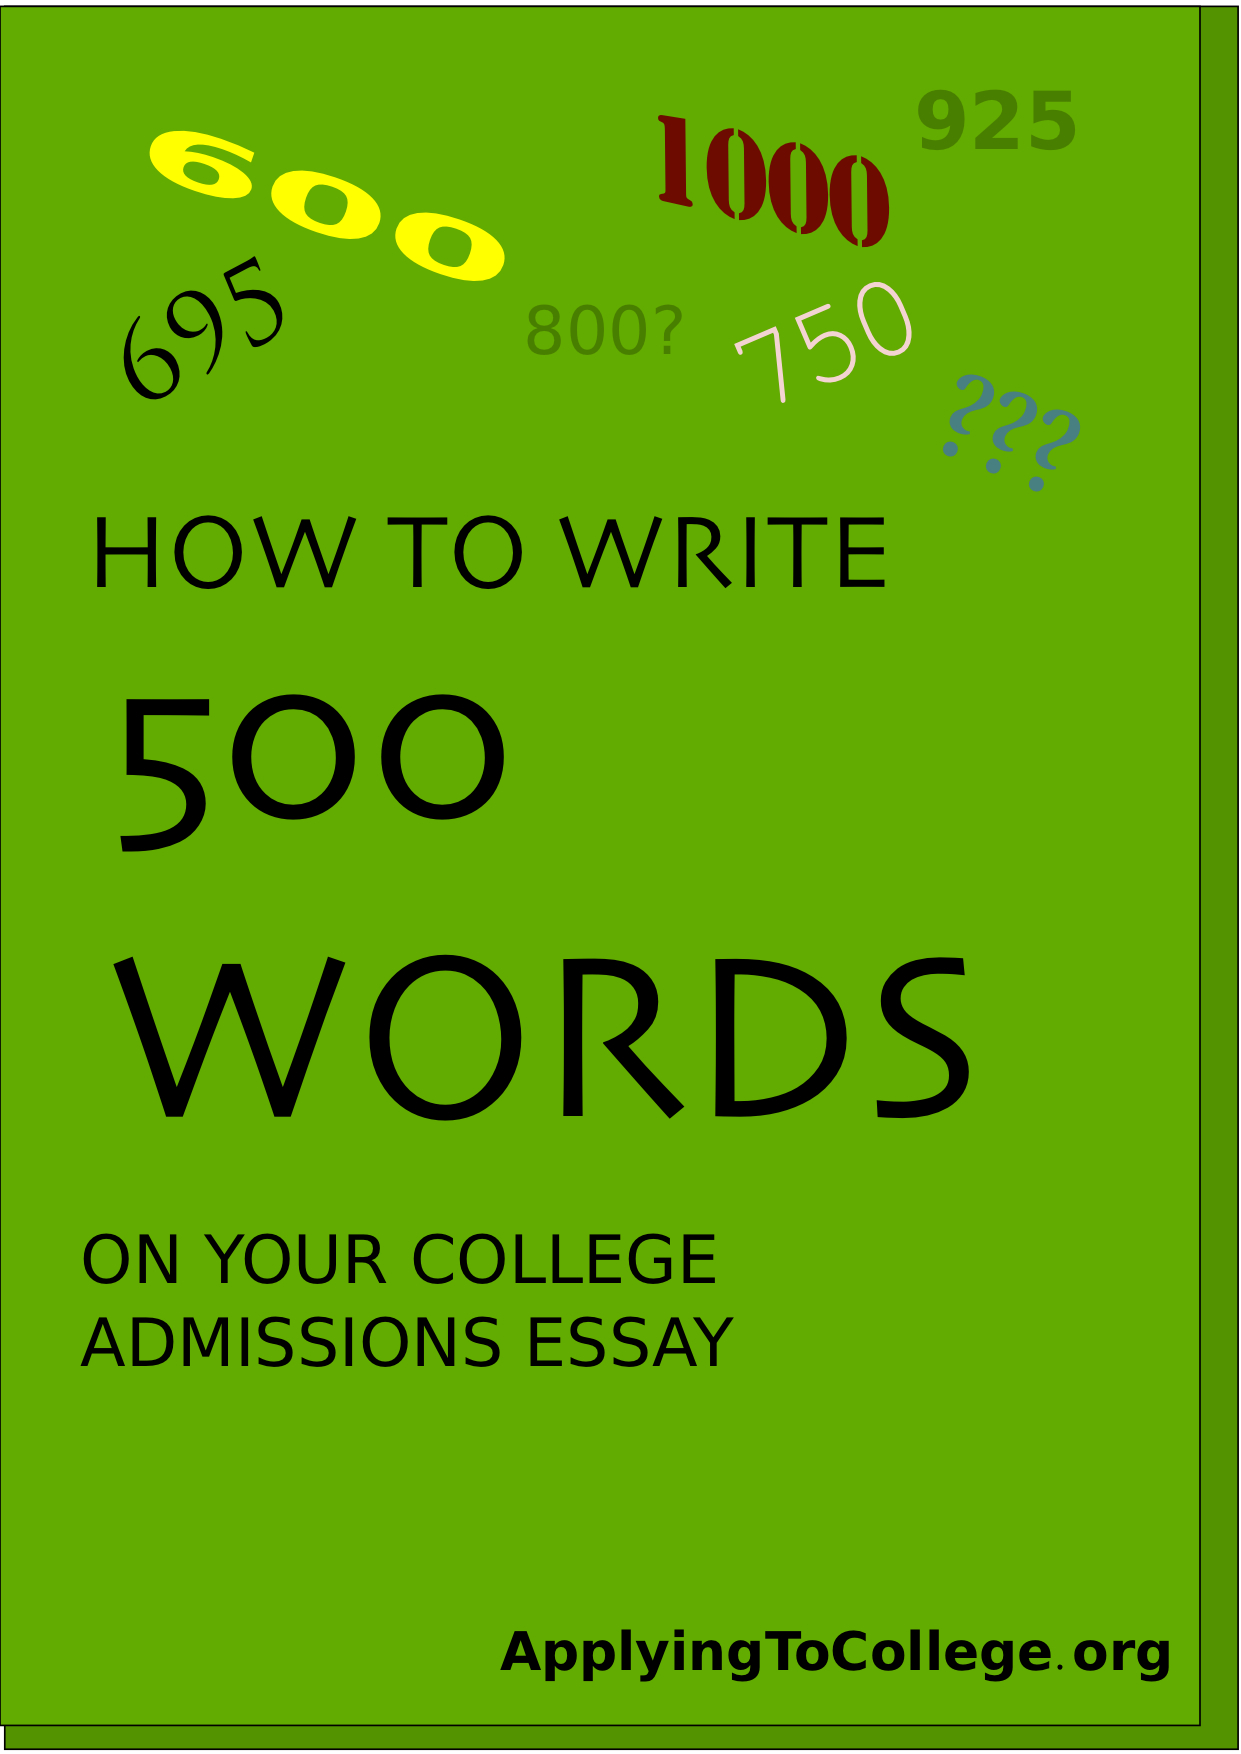 500 word essay act of kindness Free essay: an act of kindness that i did for someone would be for my parents  what i  500 word essay on a kind thing i did for someone.